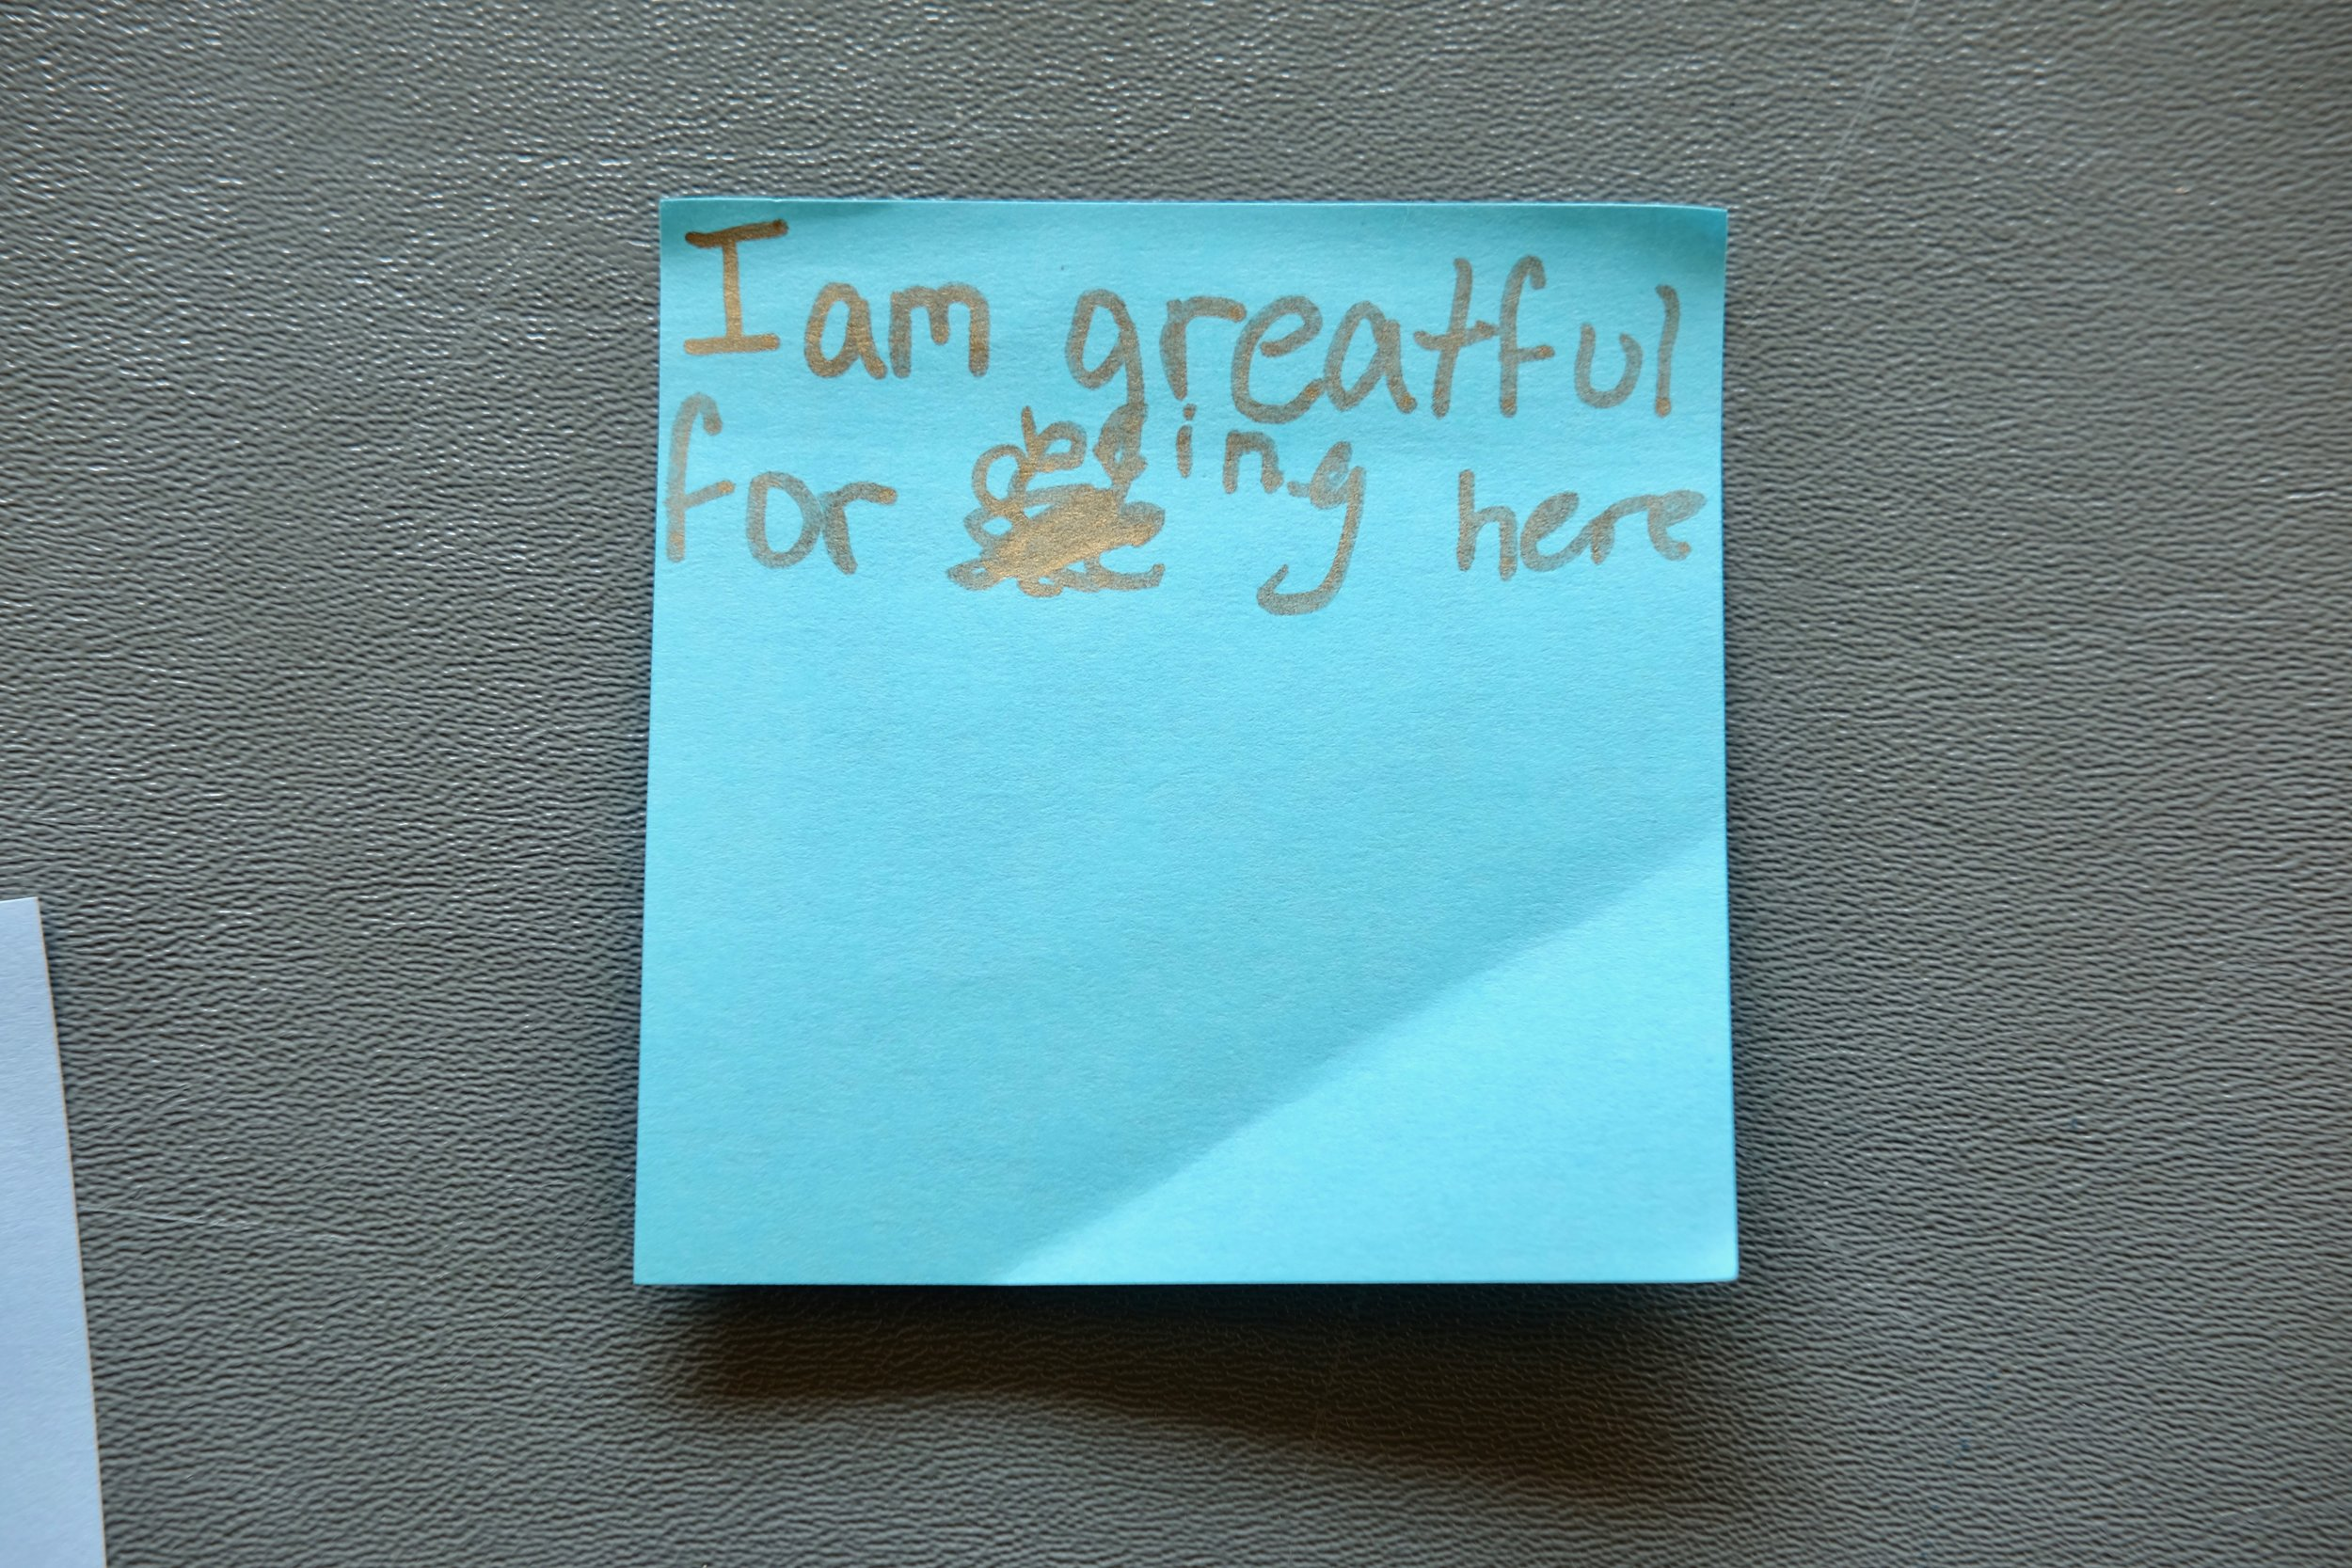 A post-it note left by a member of the public. I couldn't have said it better myself.